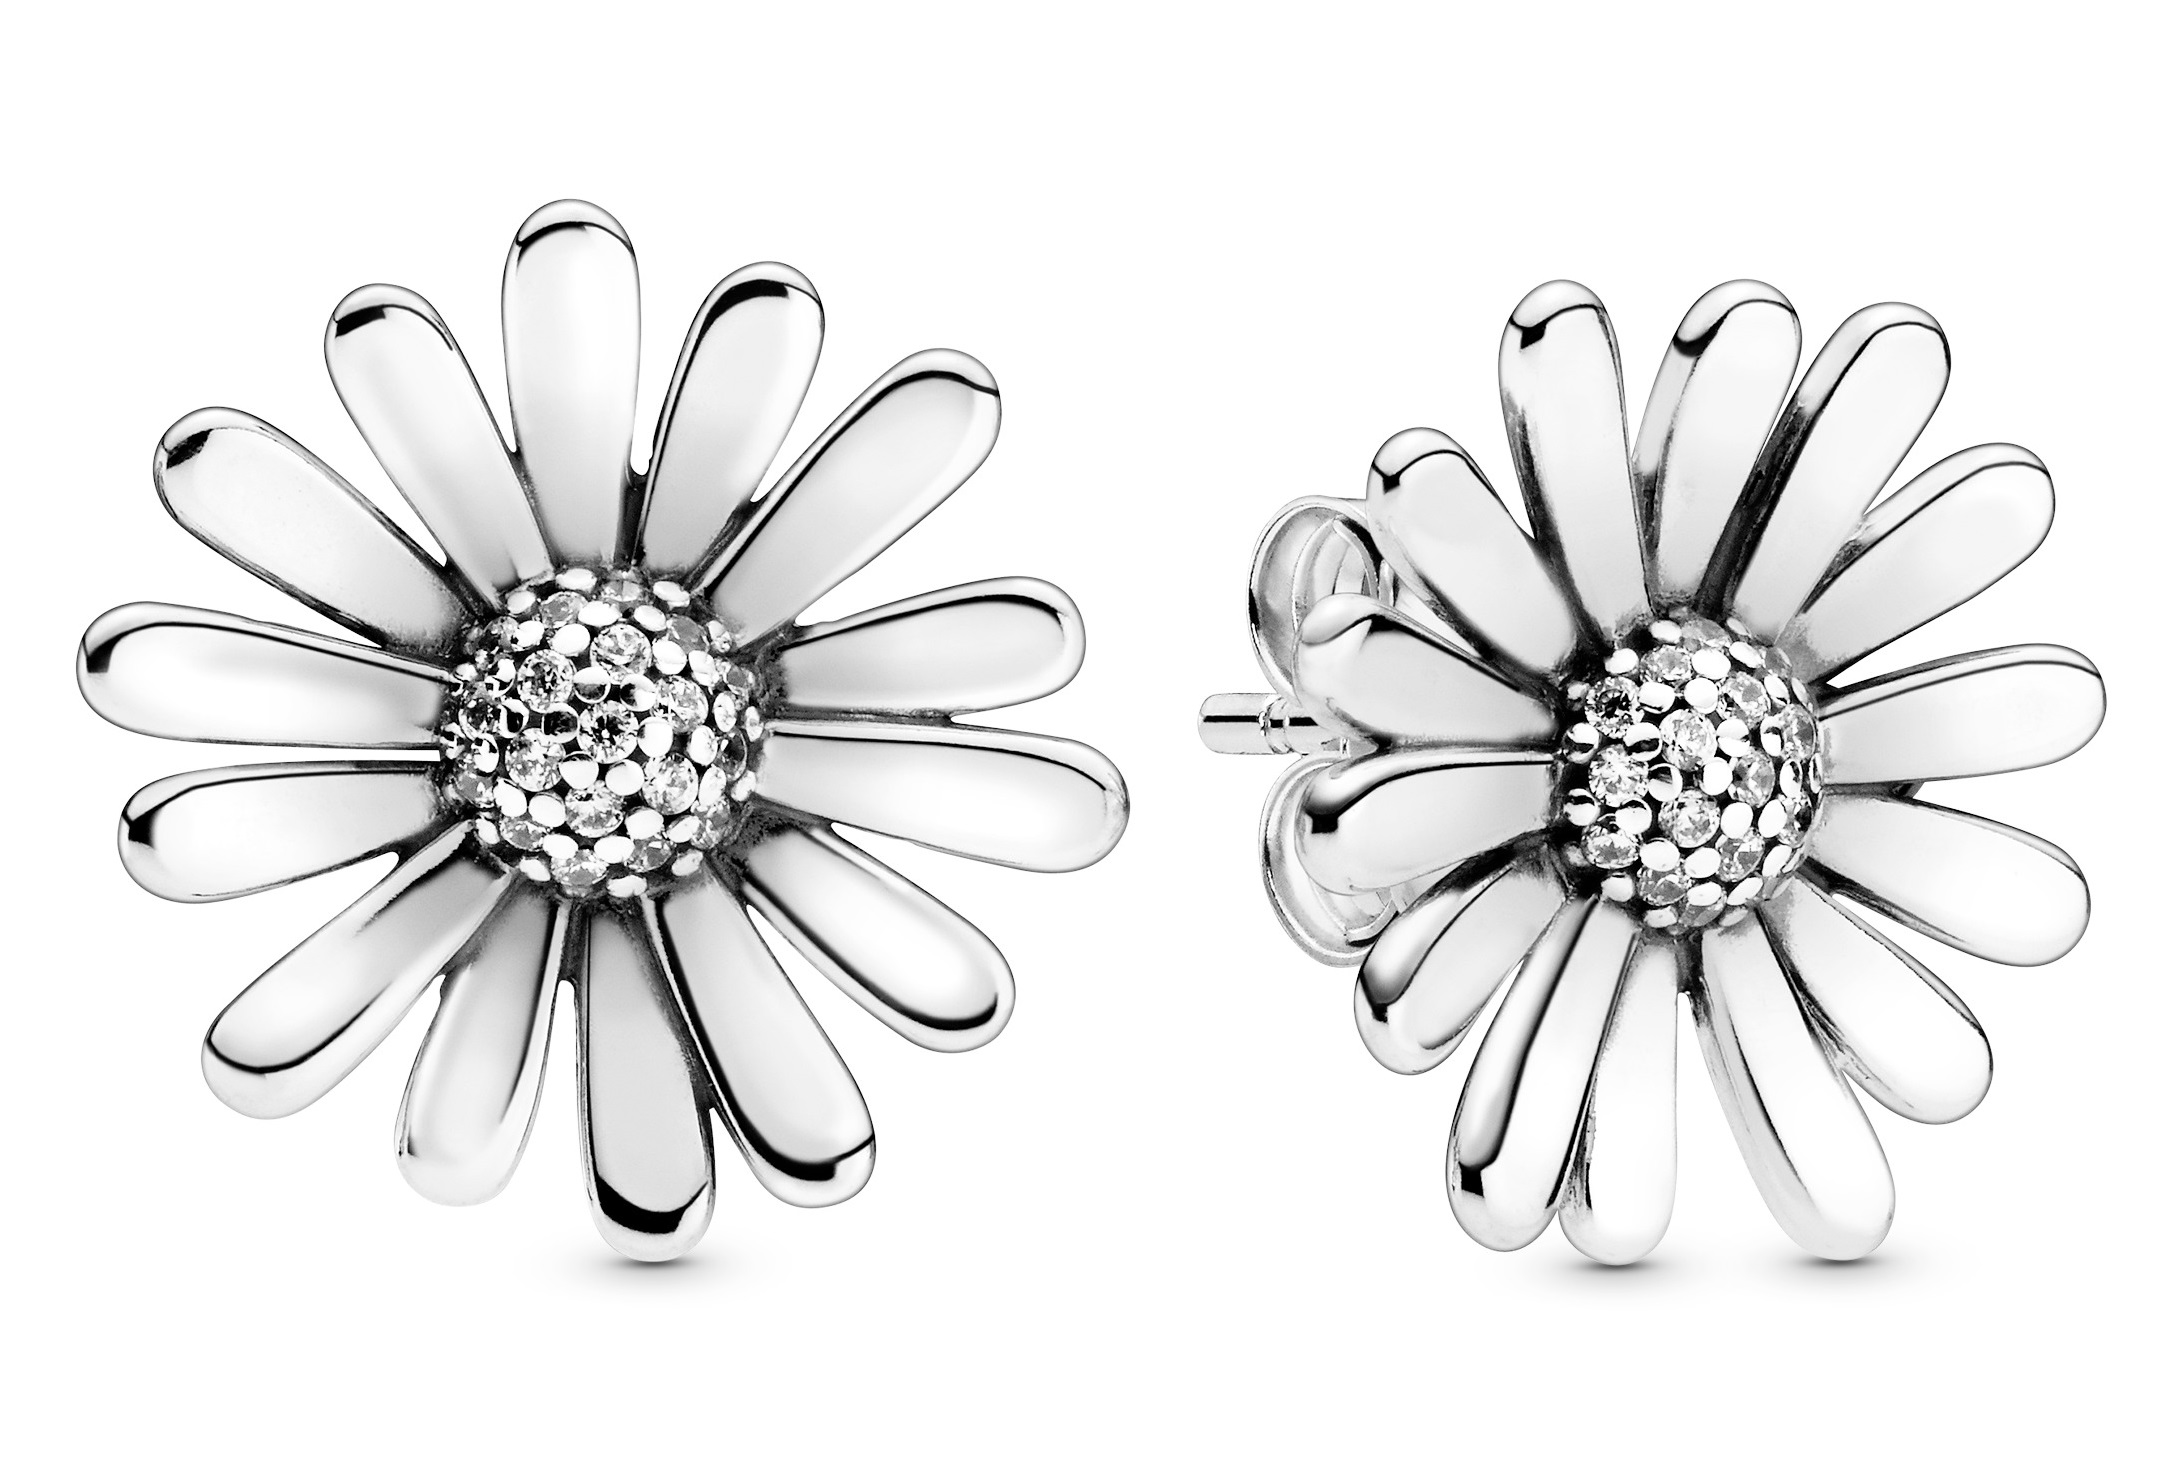 IN PICS: Pandora Spring collection | Retail Jeweller